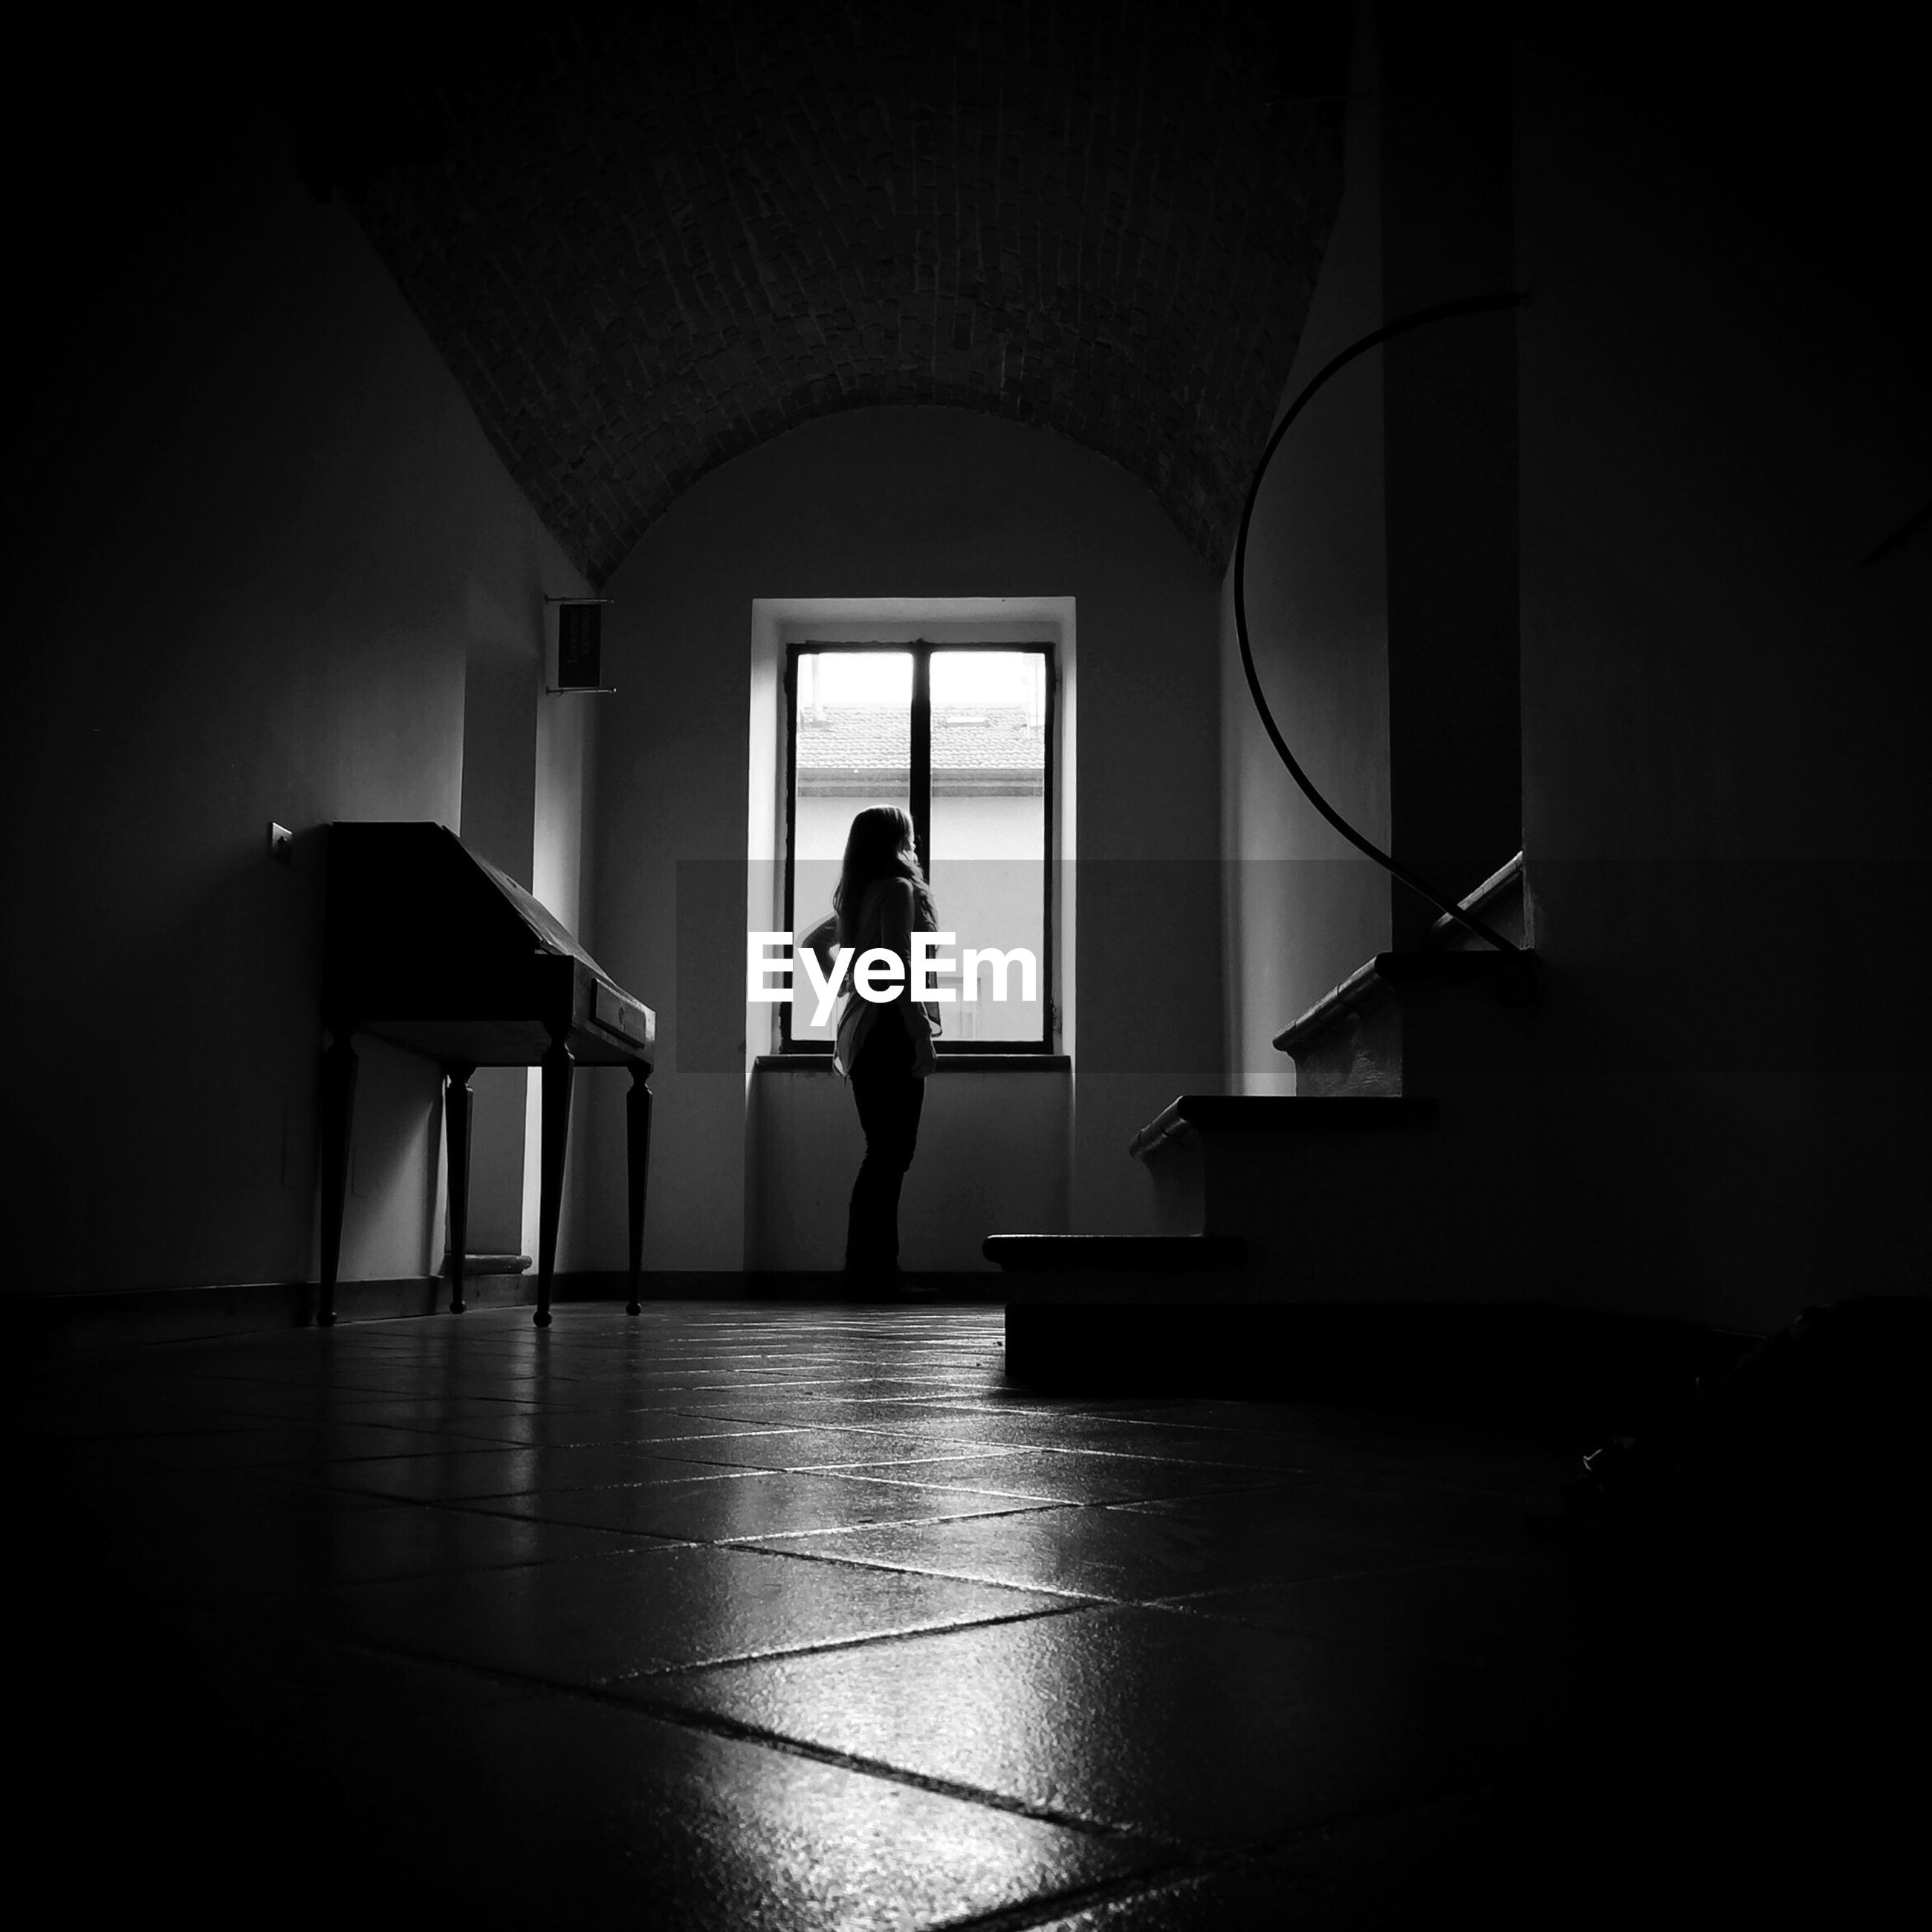 Black and white image of a room interior